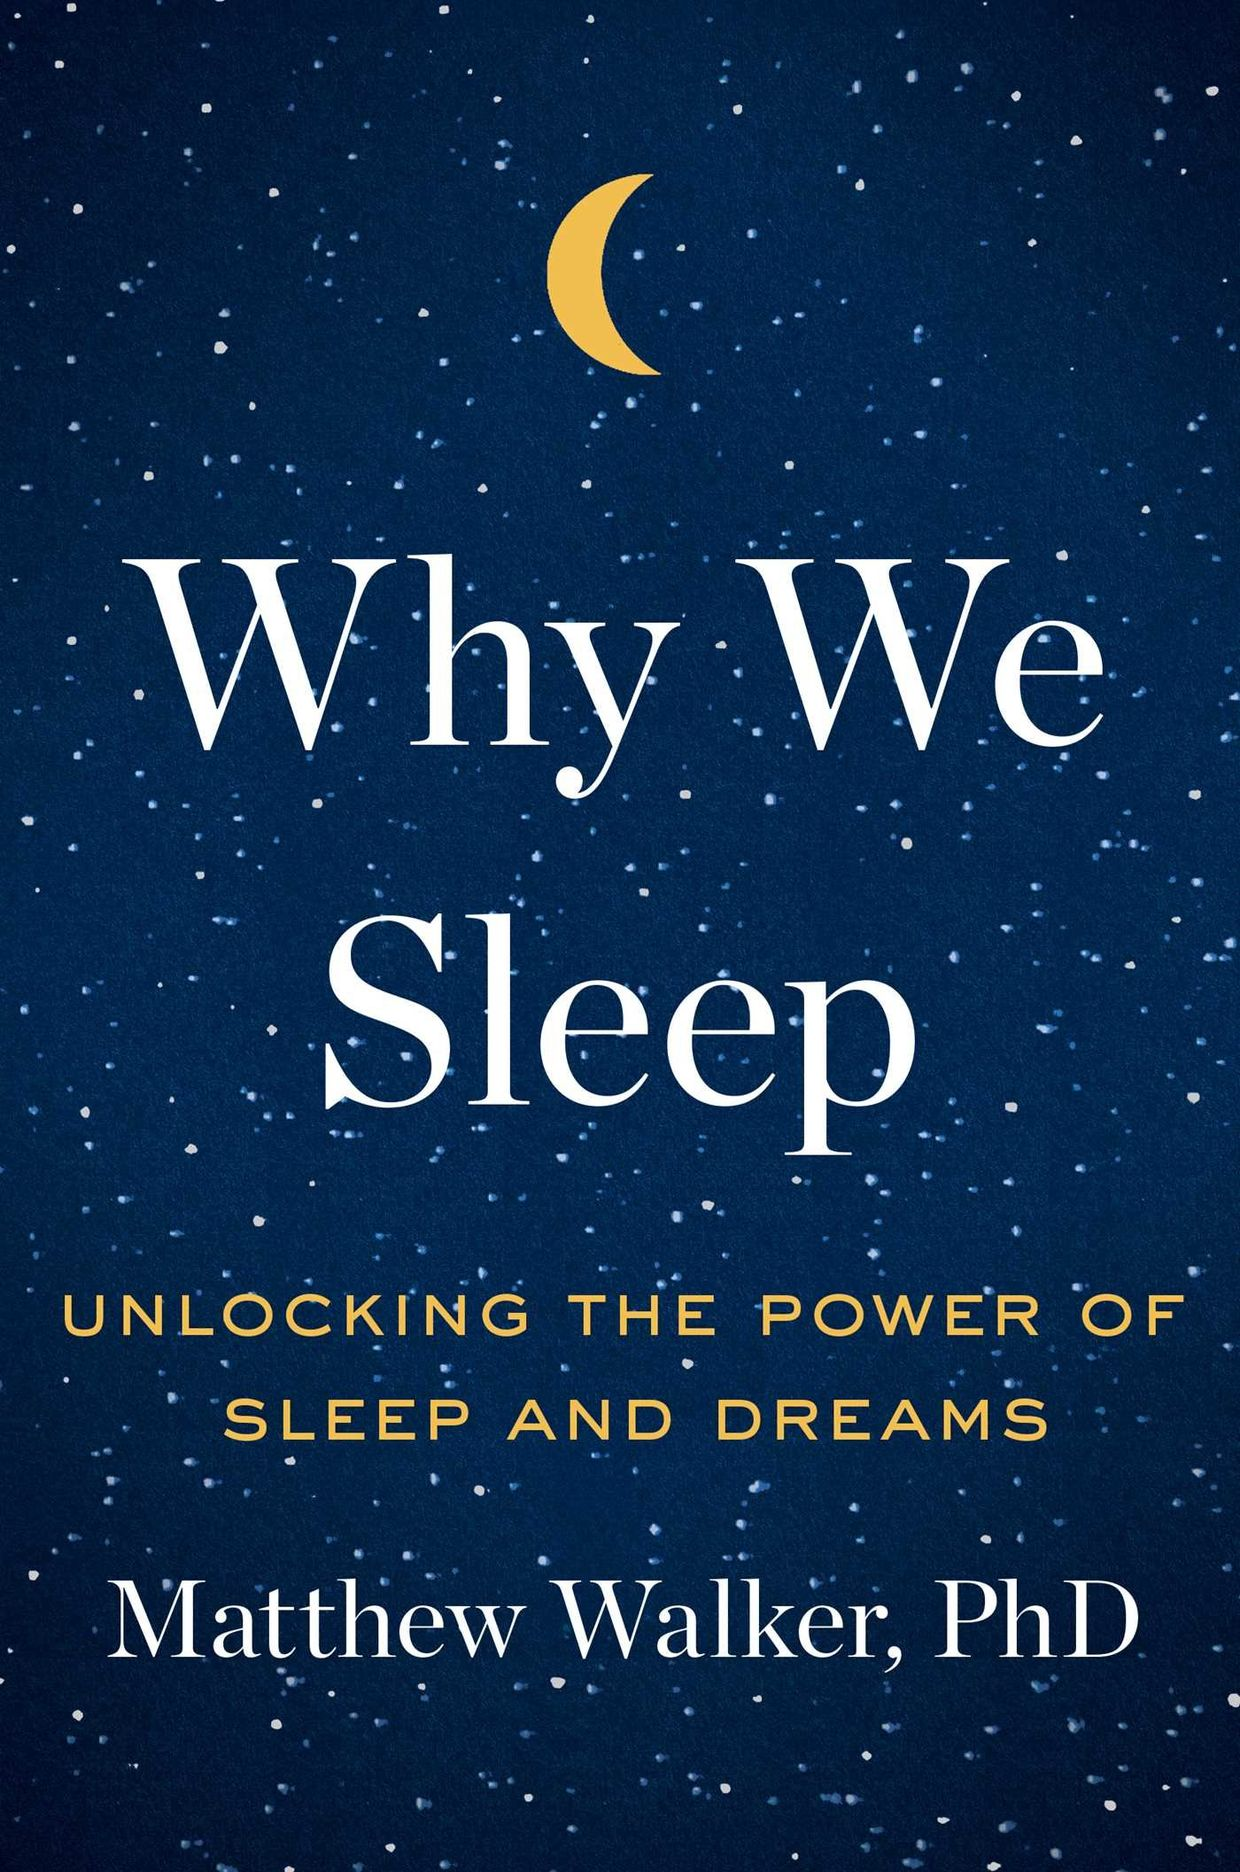 Why We Sleep: Unlocking the Power of Sleep and Dreams, by Matt Walker